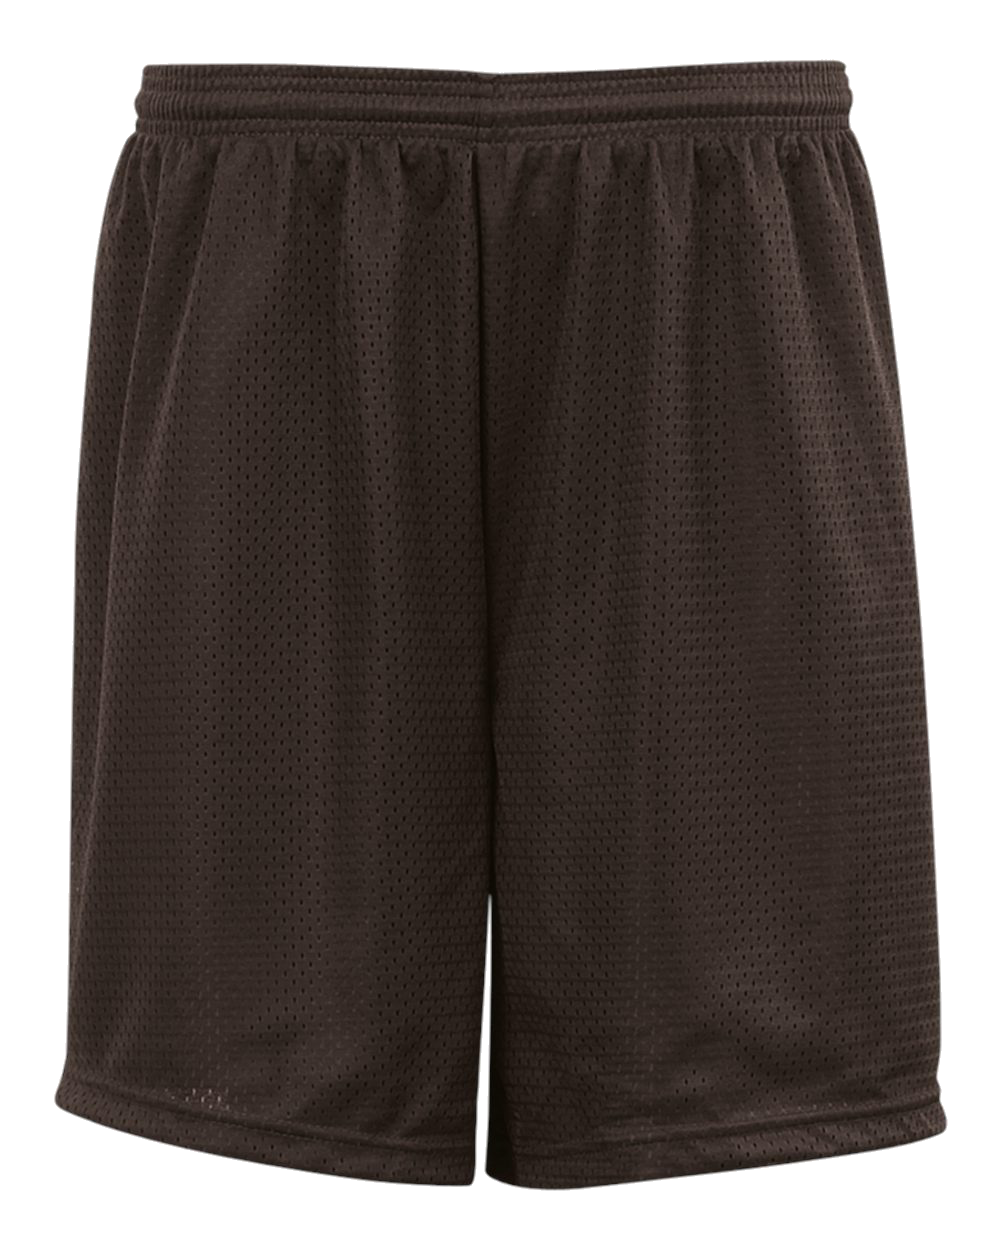 Mesh/Tricot 6 Inch Youth Short - Brown